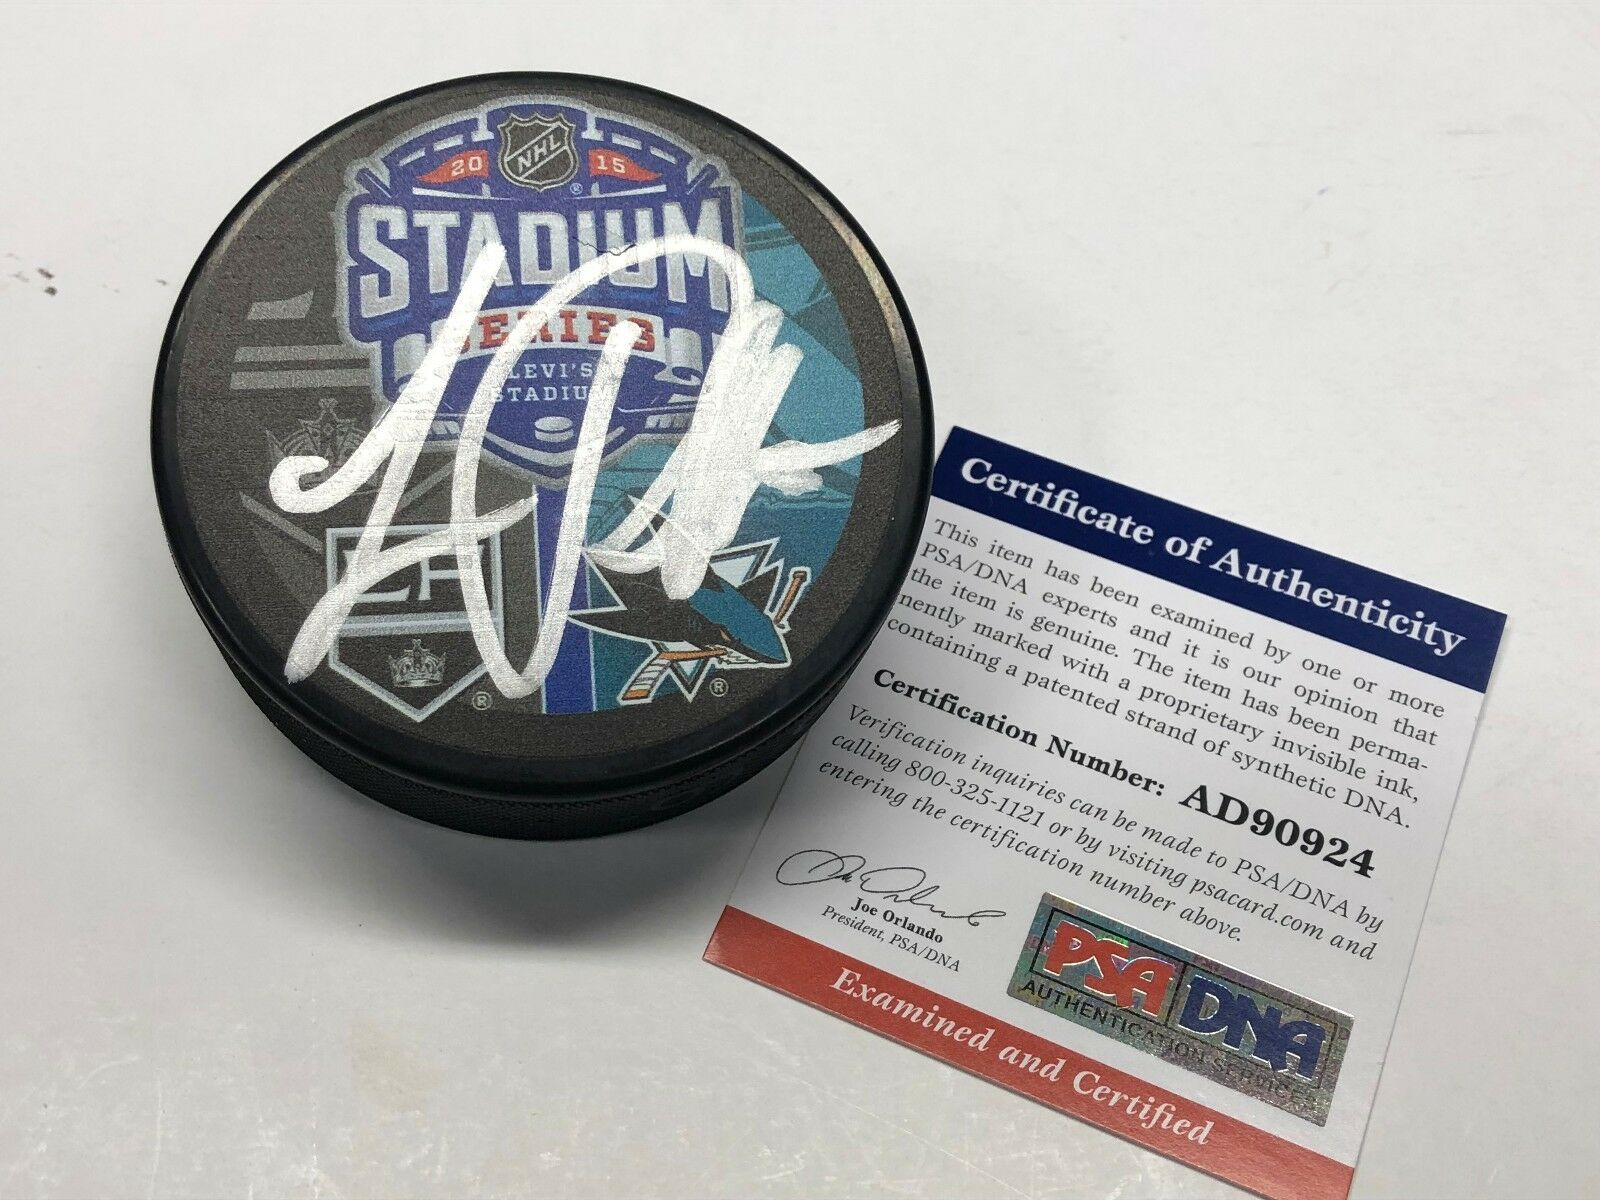 Luc Robitaille Signed Stadium Series Hockey Puck Sharks/Kings Dodger Stadium PSA